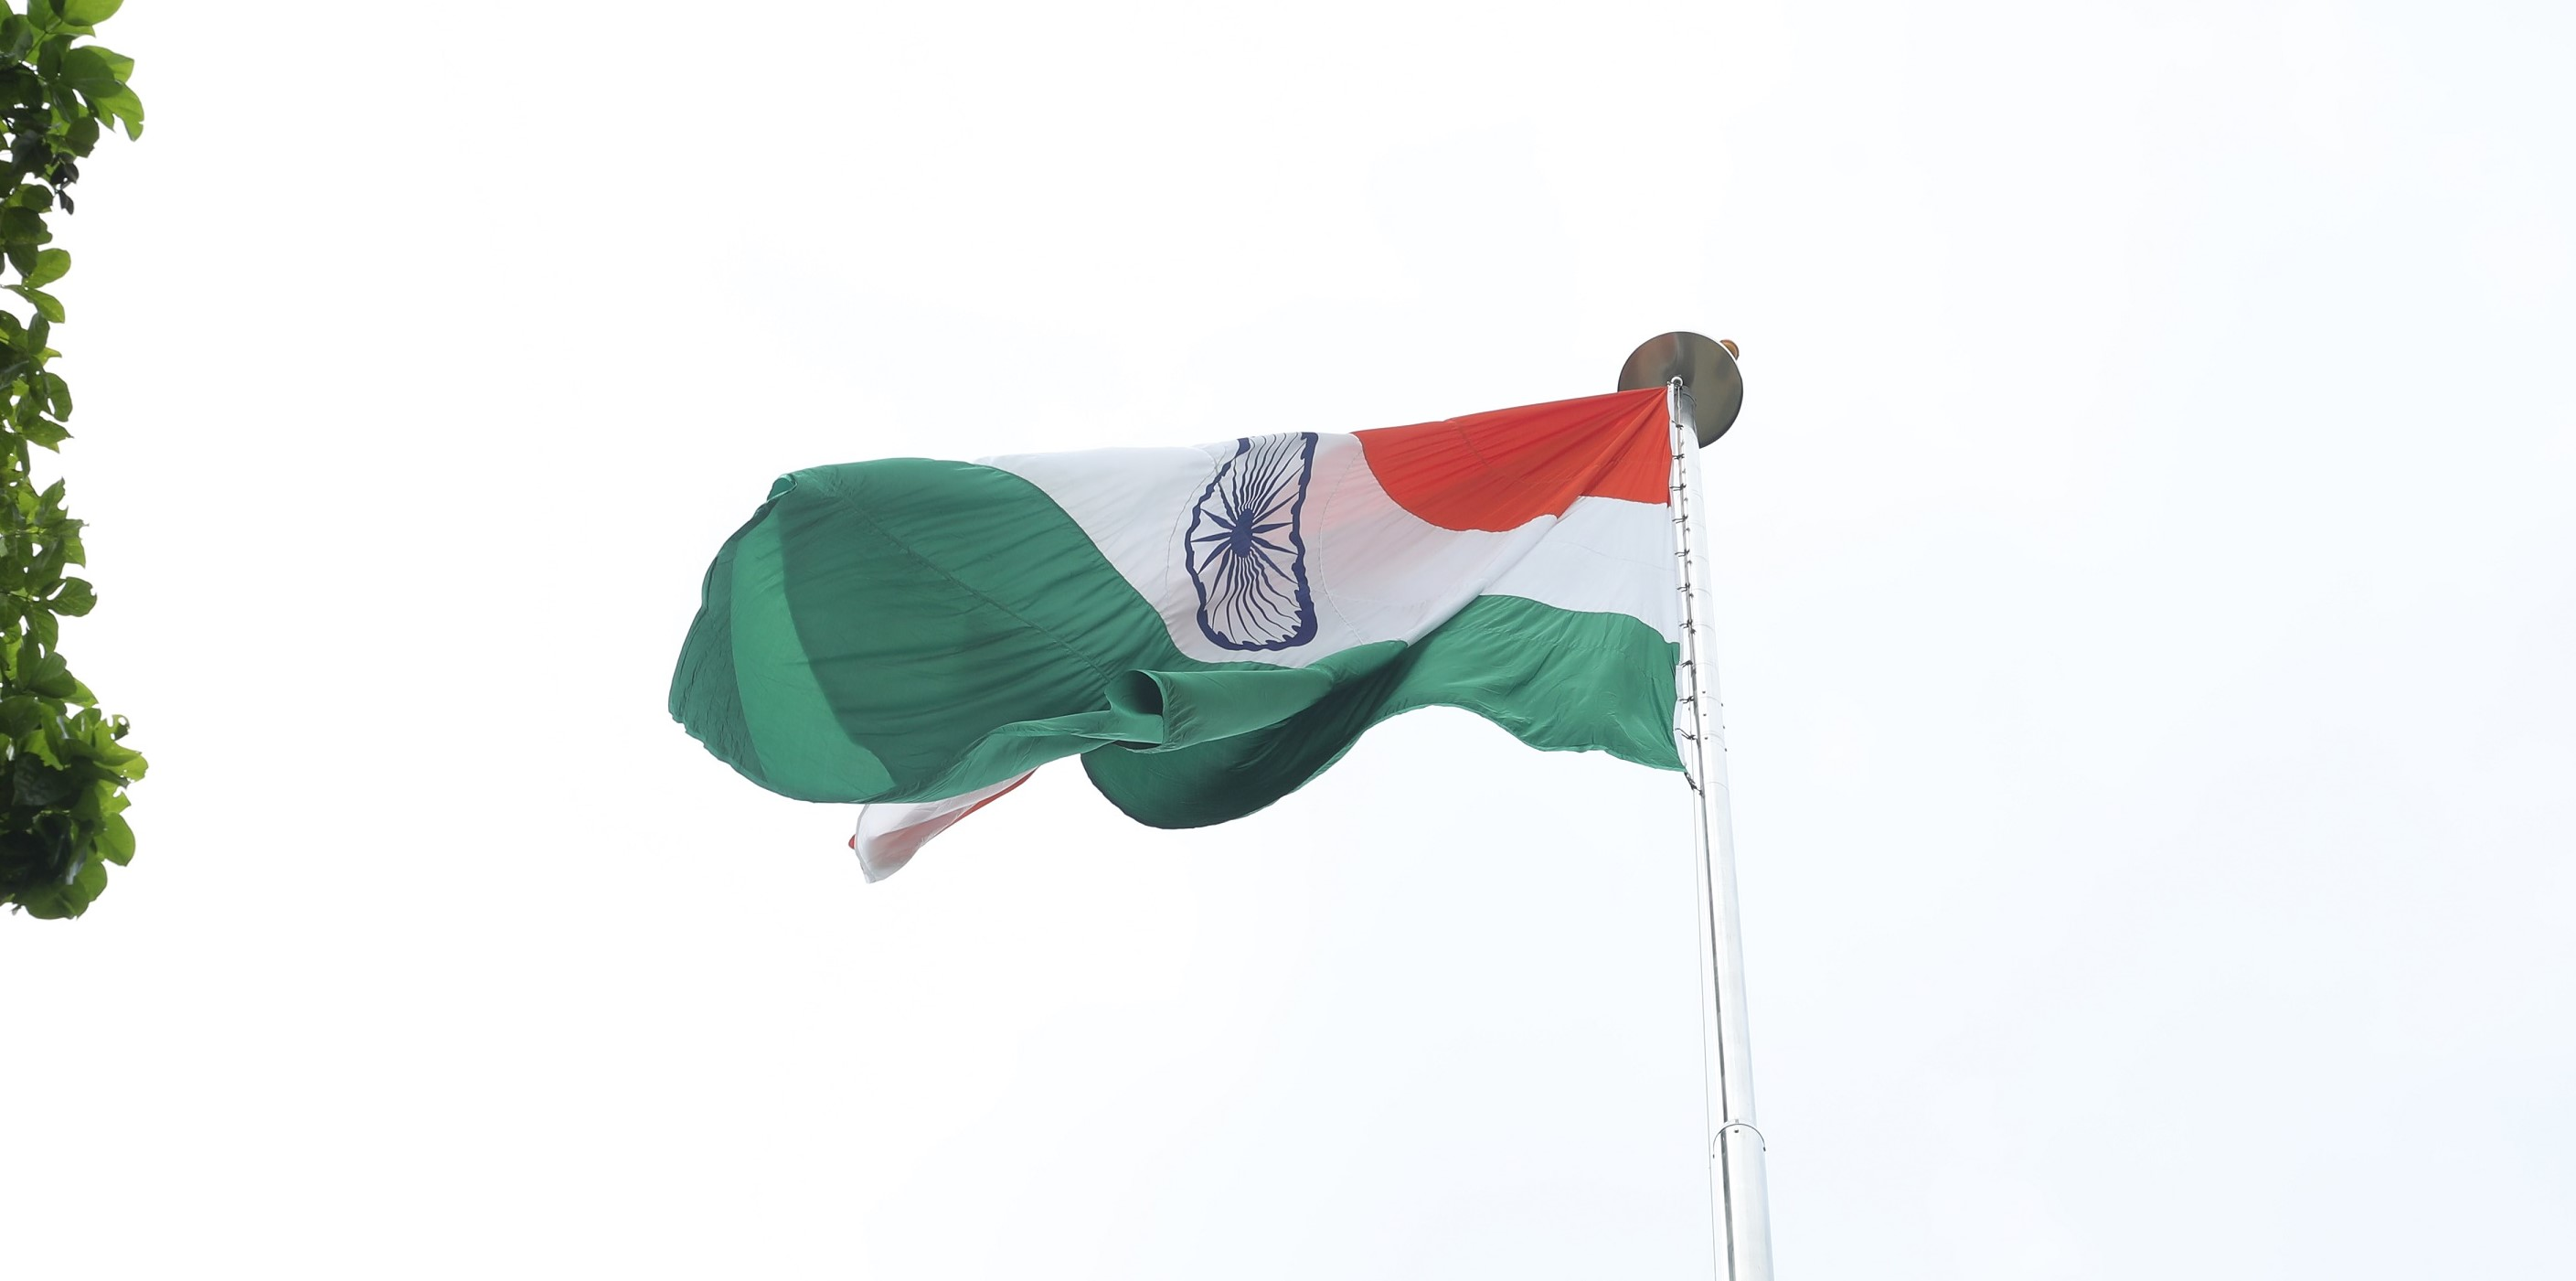 Tiranga India's Largest Flag